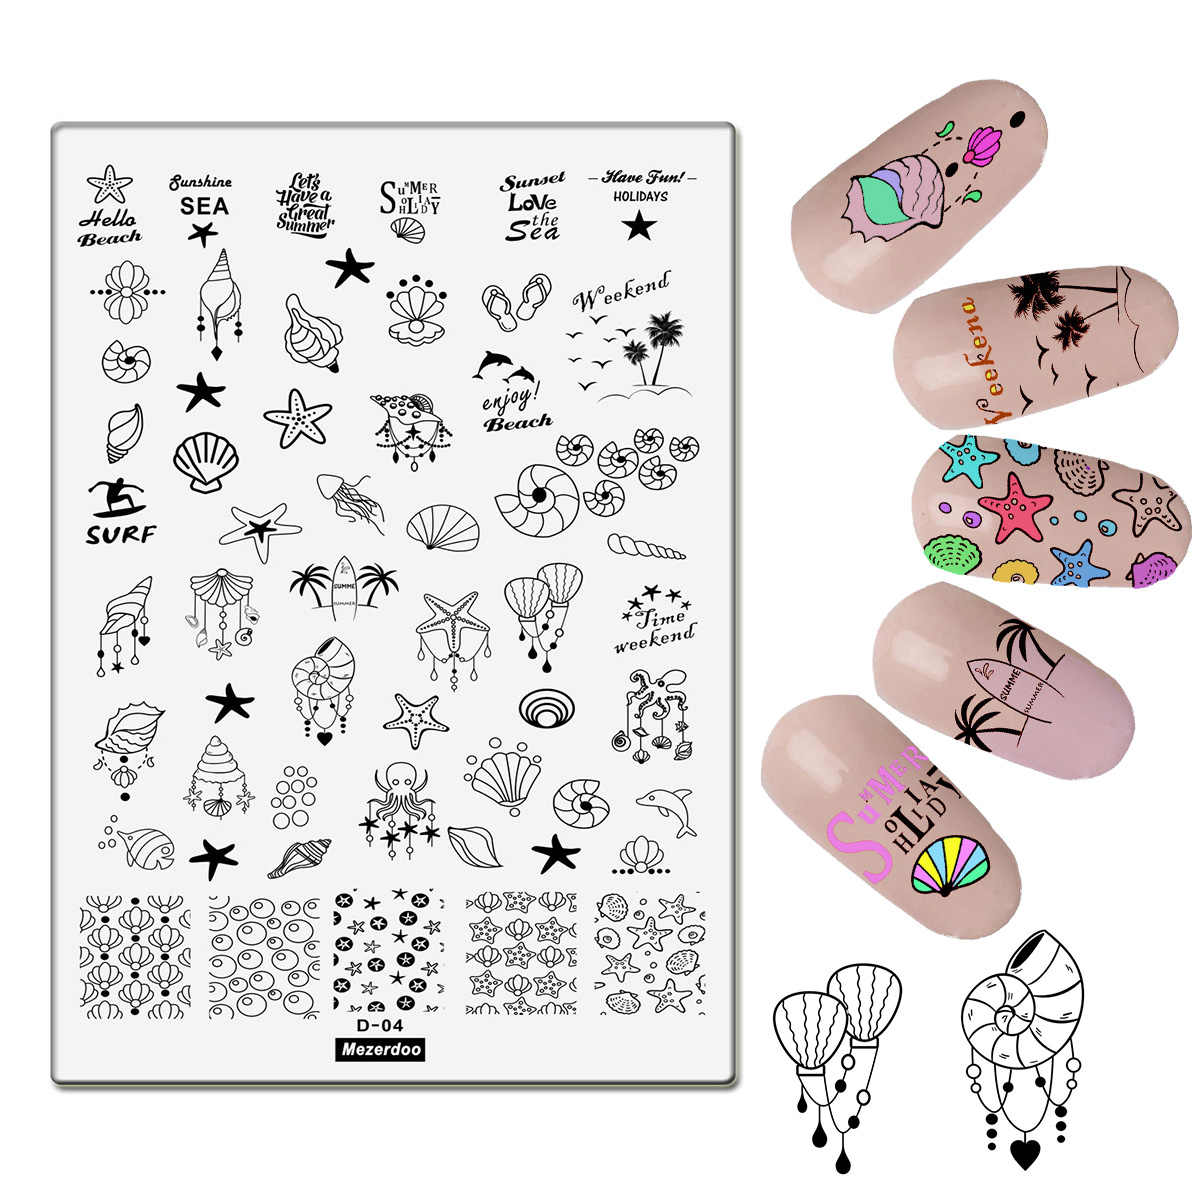 Summer Holiday Large Nail Art Image Stamp Template Plates Sea Theme Conch Starfish Shell Design Polish Stamping Manicure Tools